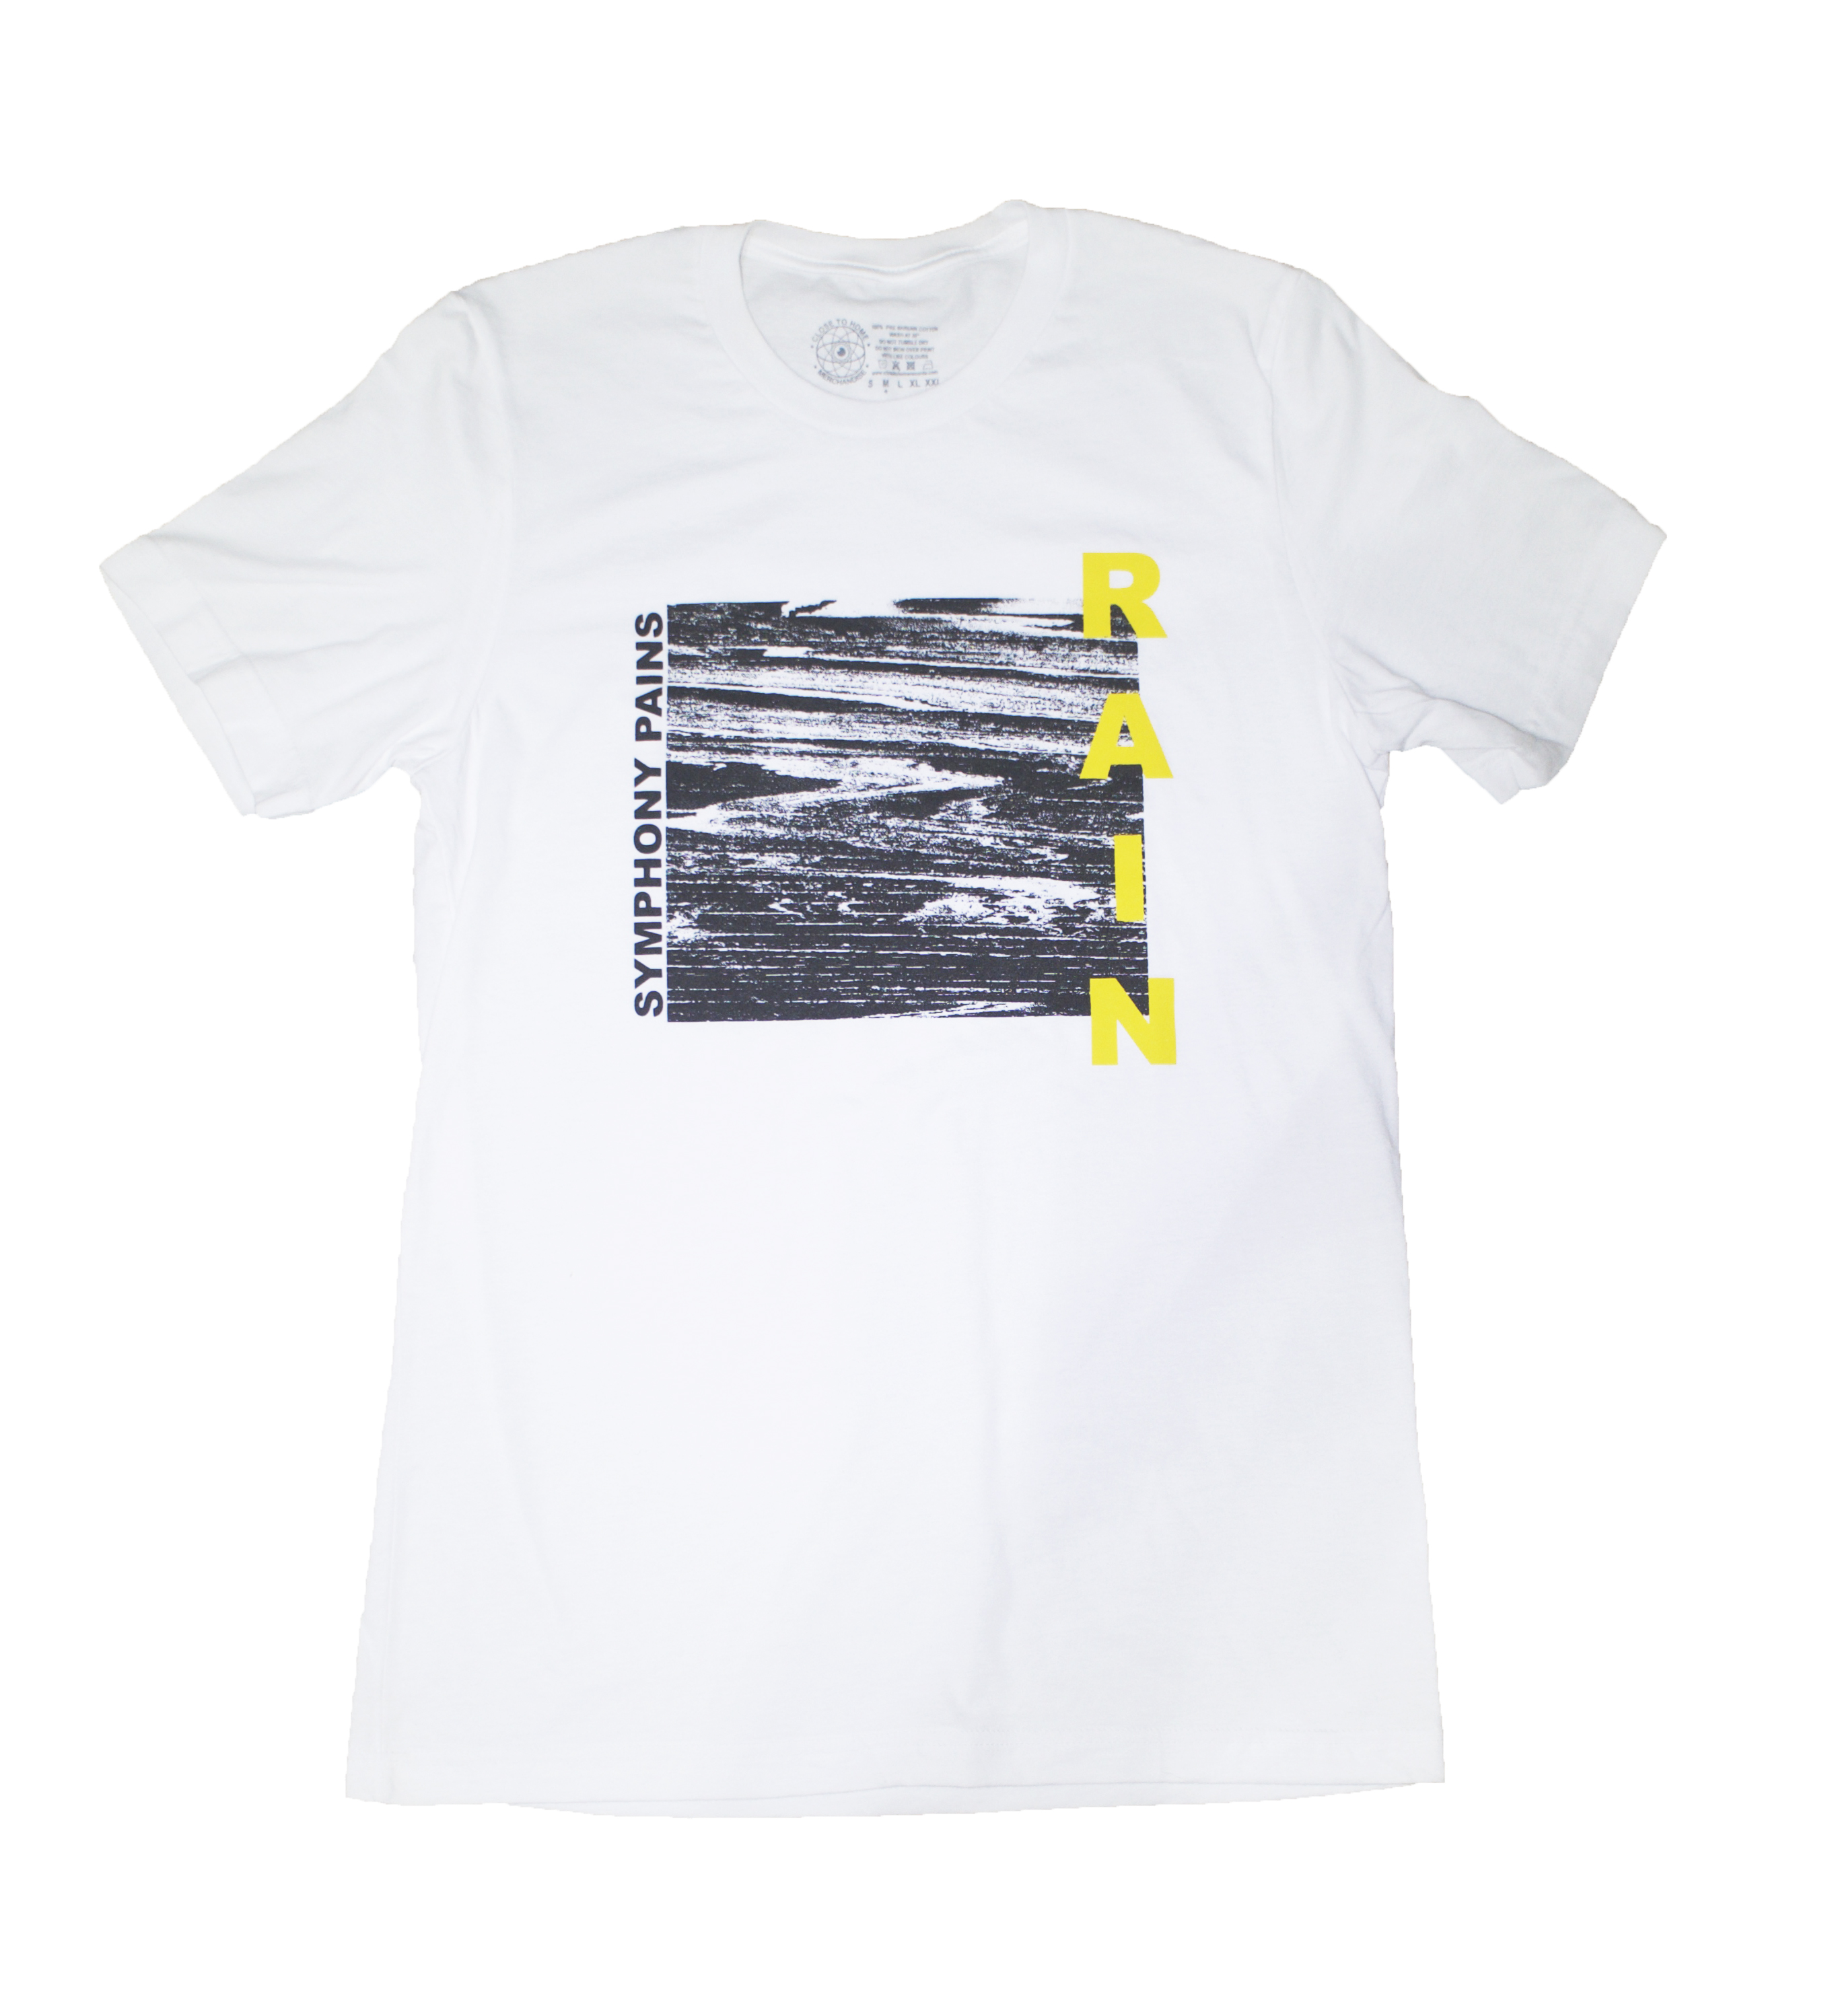 Rain - Symphony Pains Tee (Close To Home Merchandise No. 2)